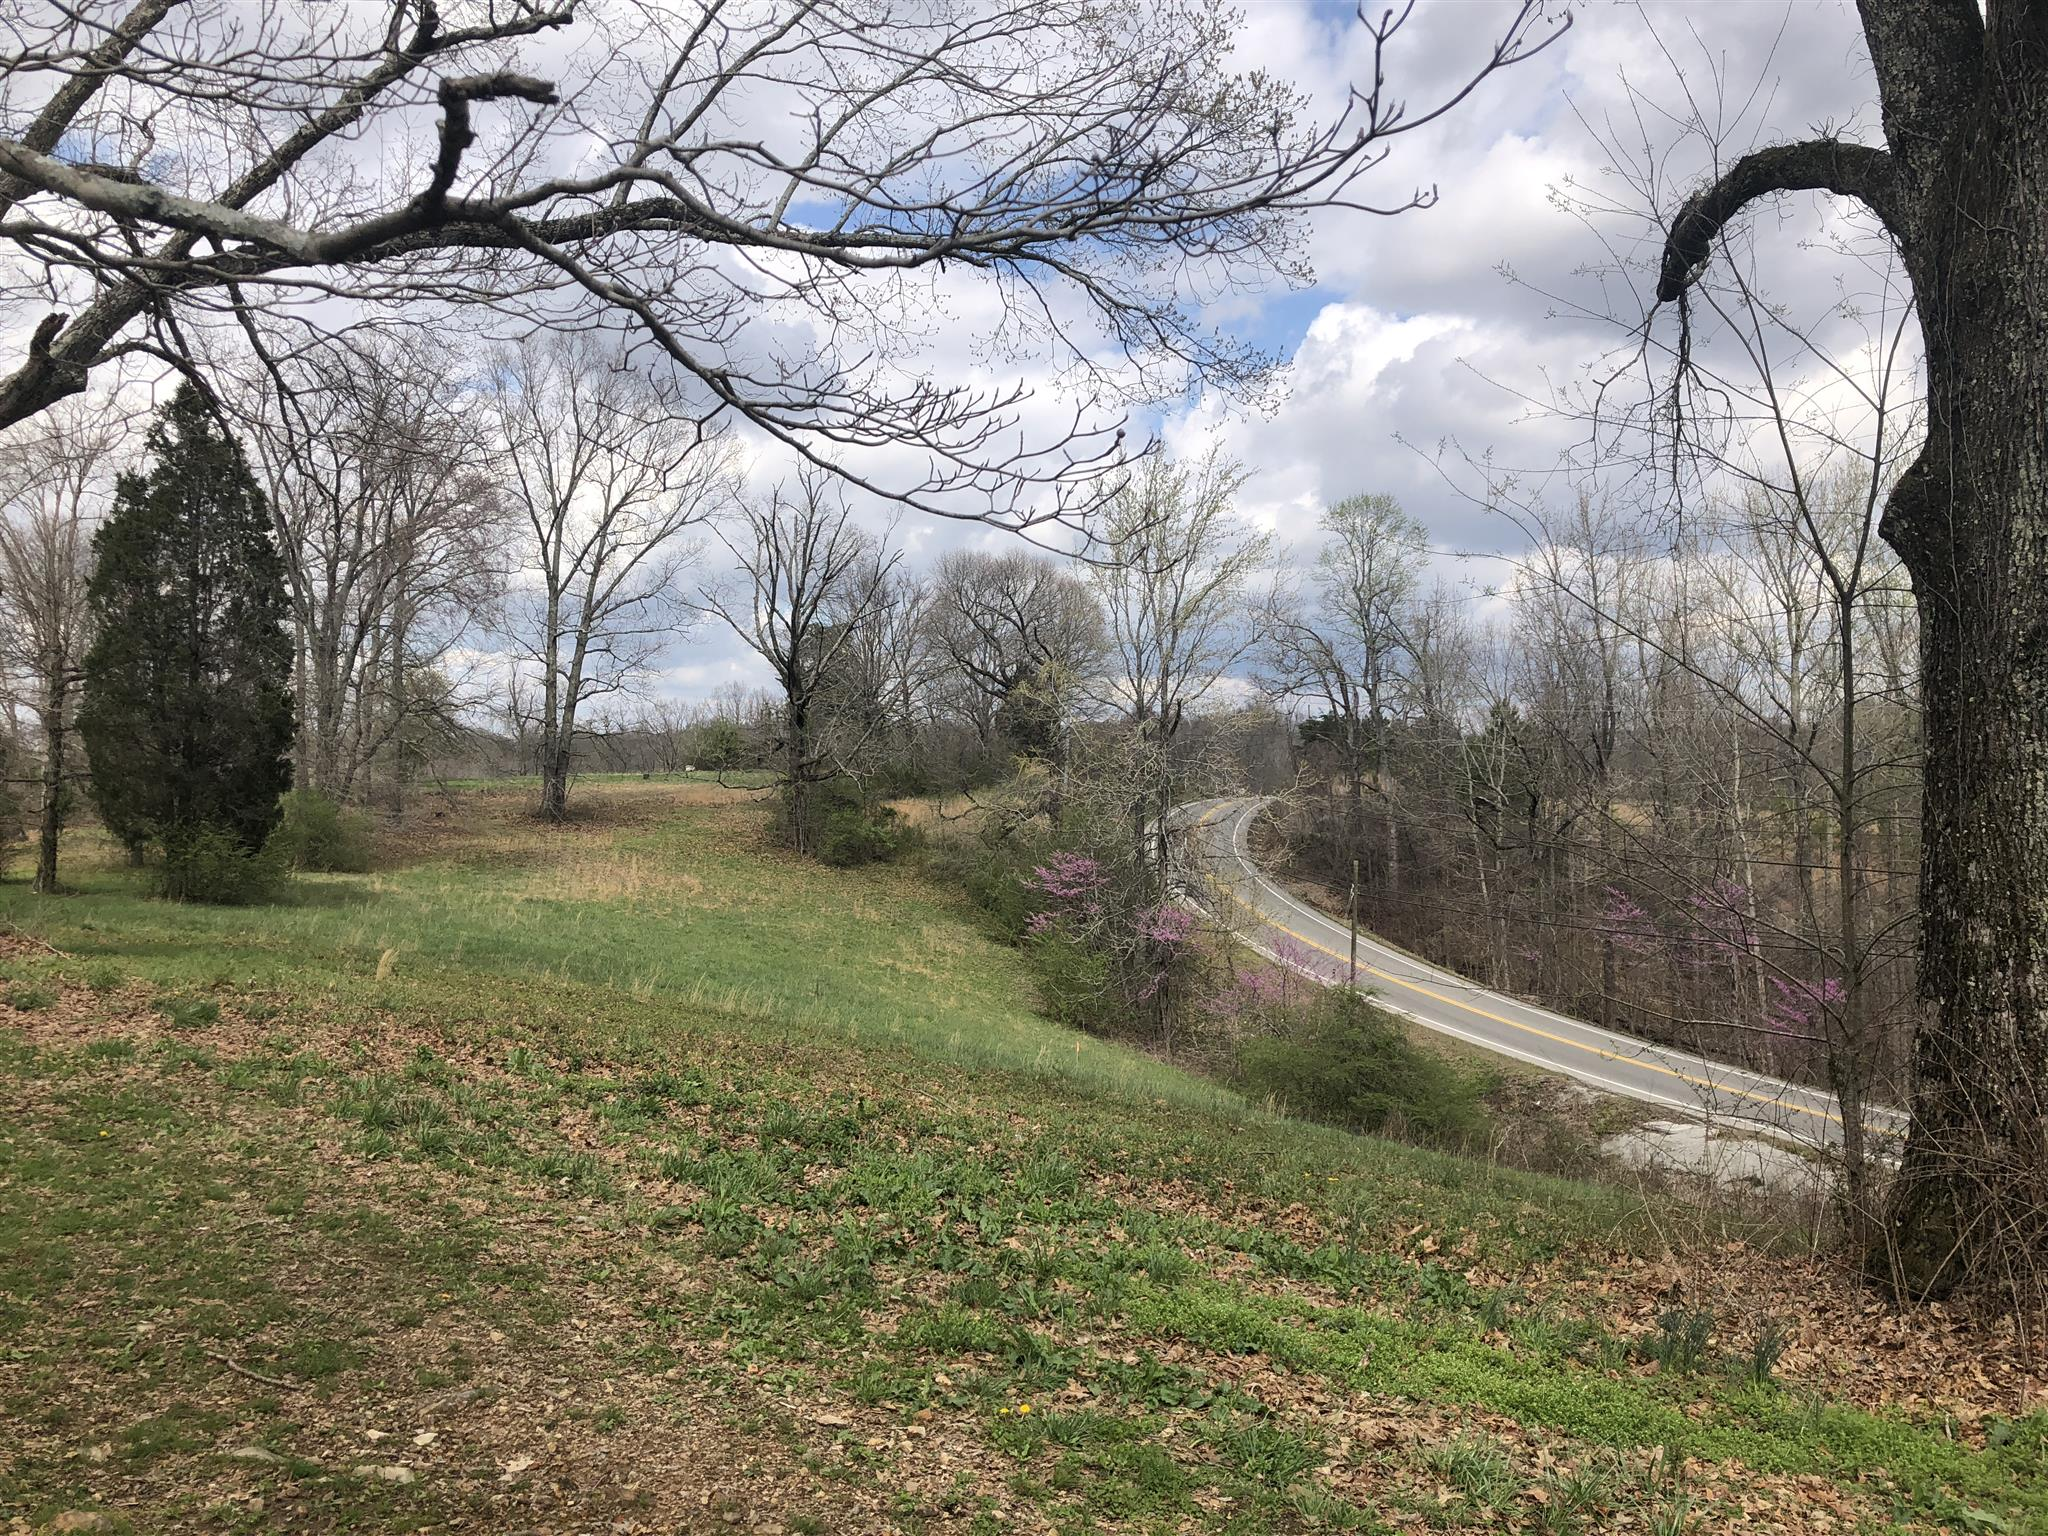 0 Frey St, Ashland City, TN 37015 - Ashland City, TN real estate listing